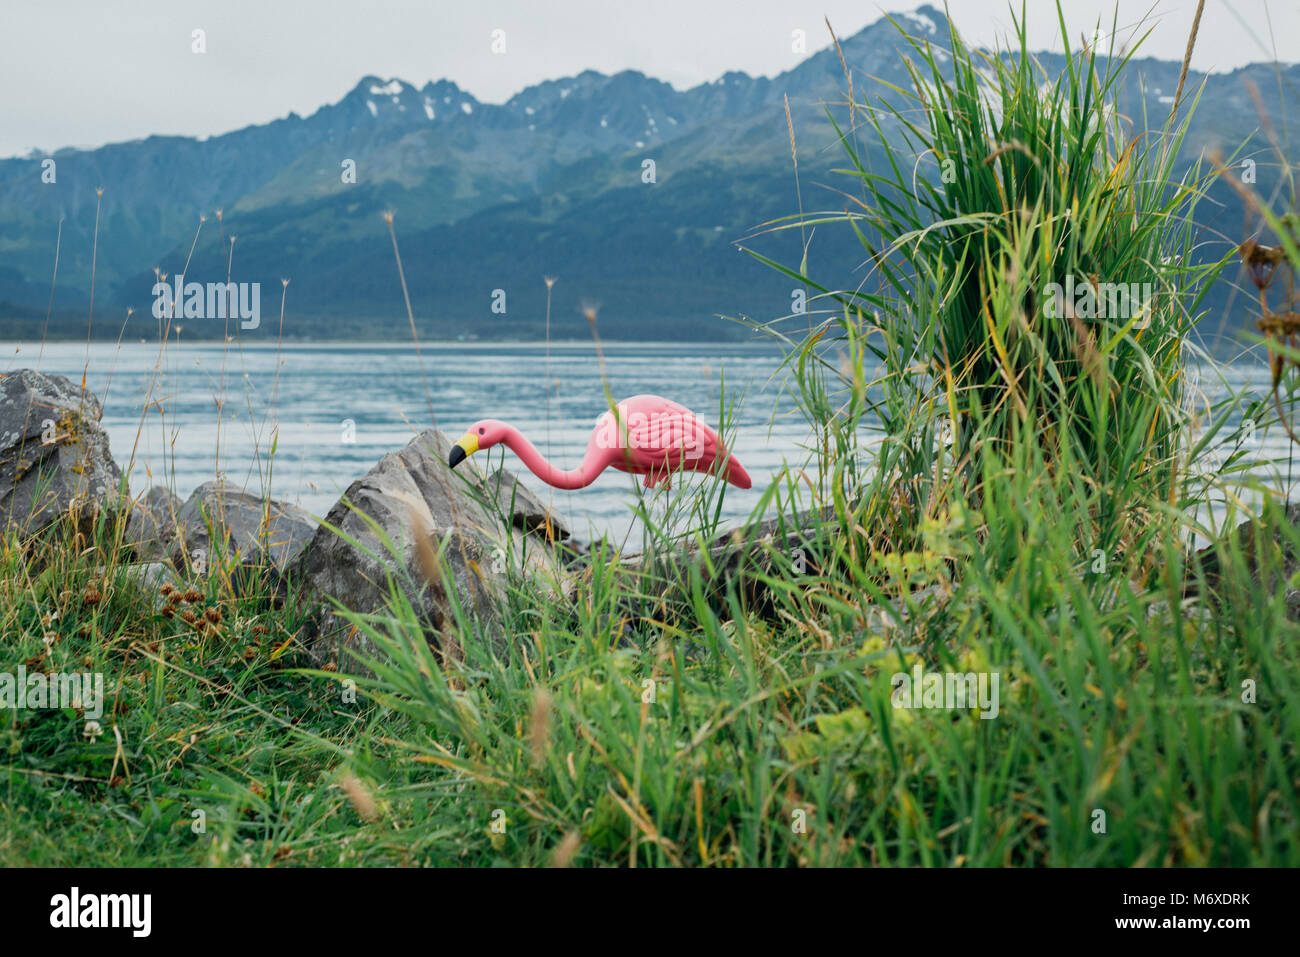 Flamingo in a Yard on a Lake in Alaska - Stock Image